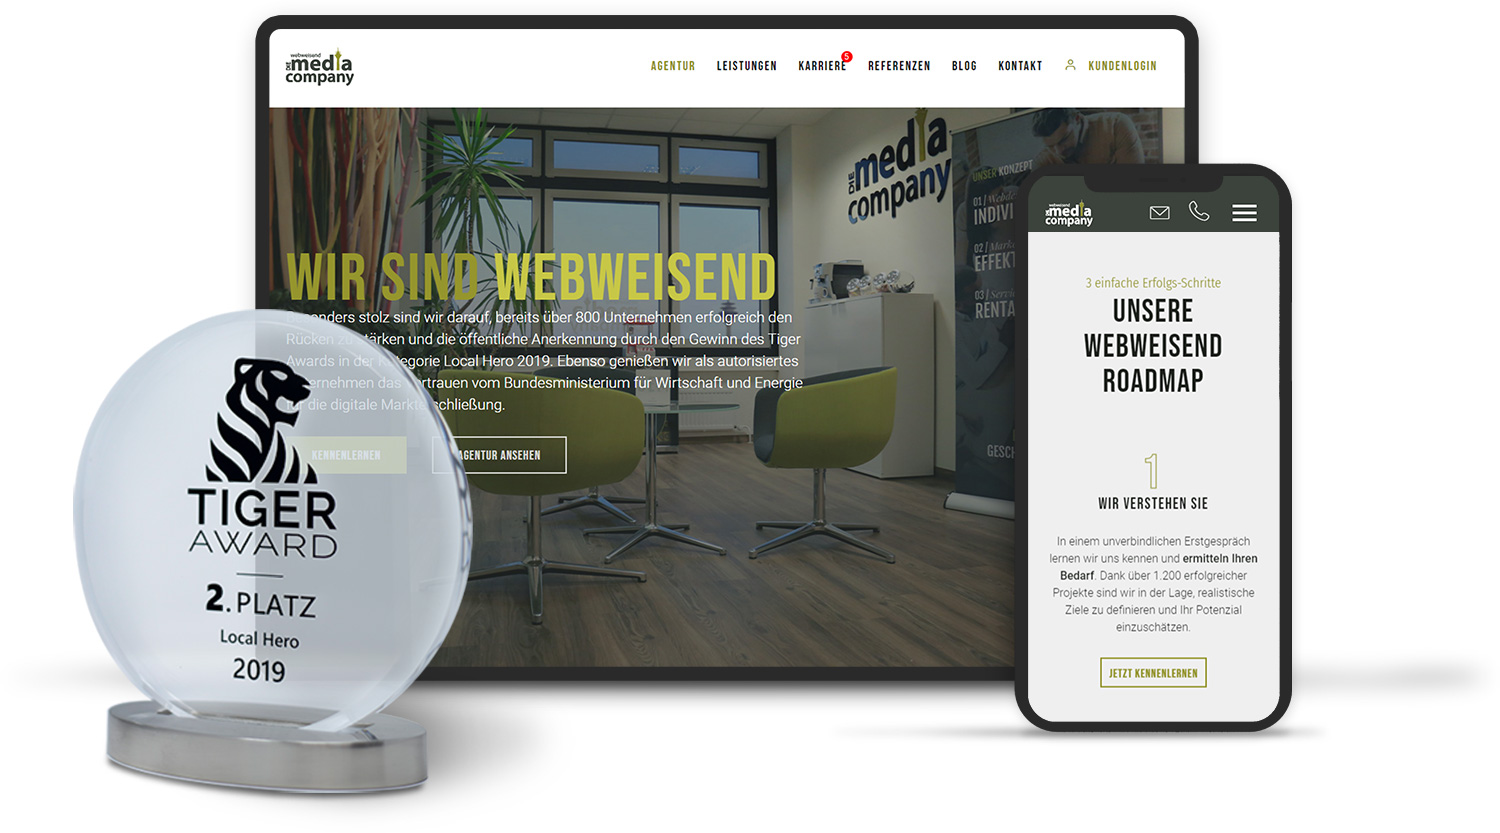 Webdesign made in Düsseldorf